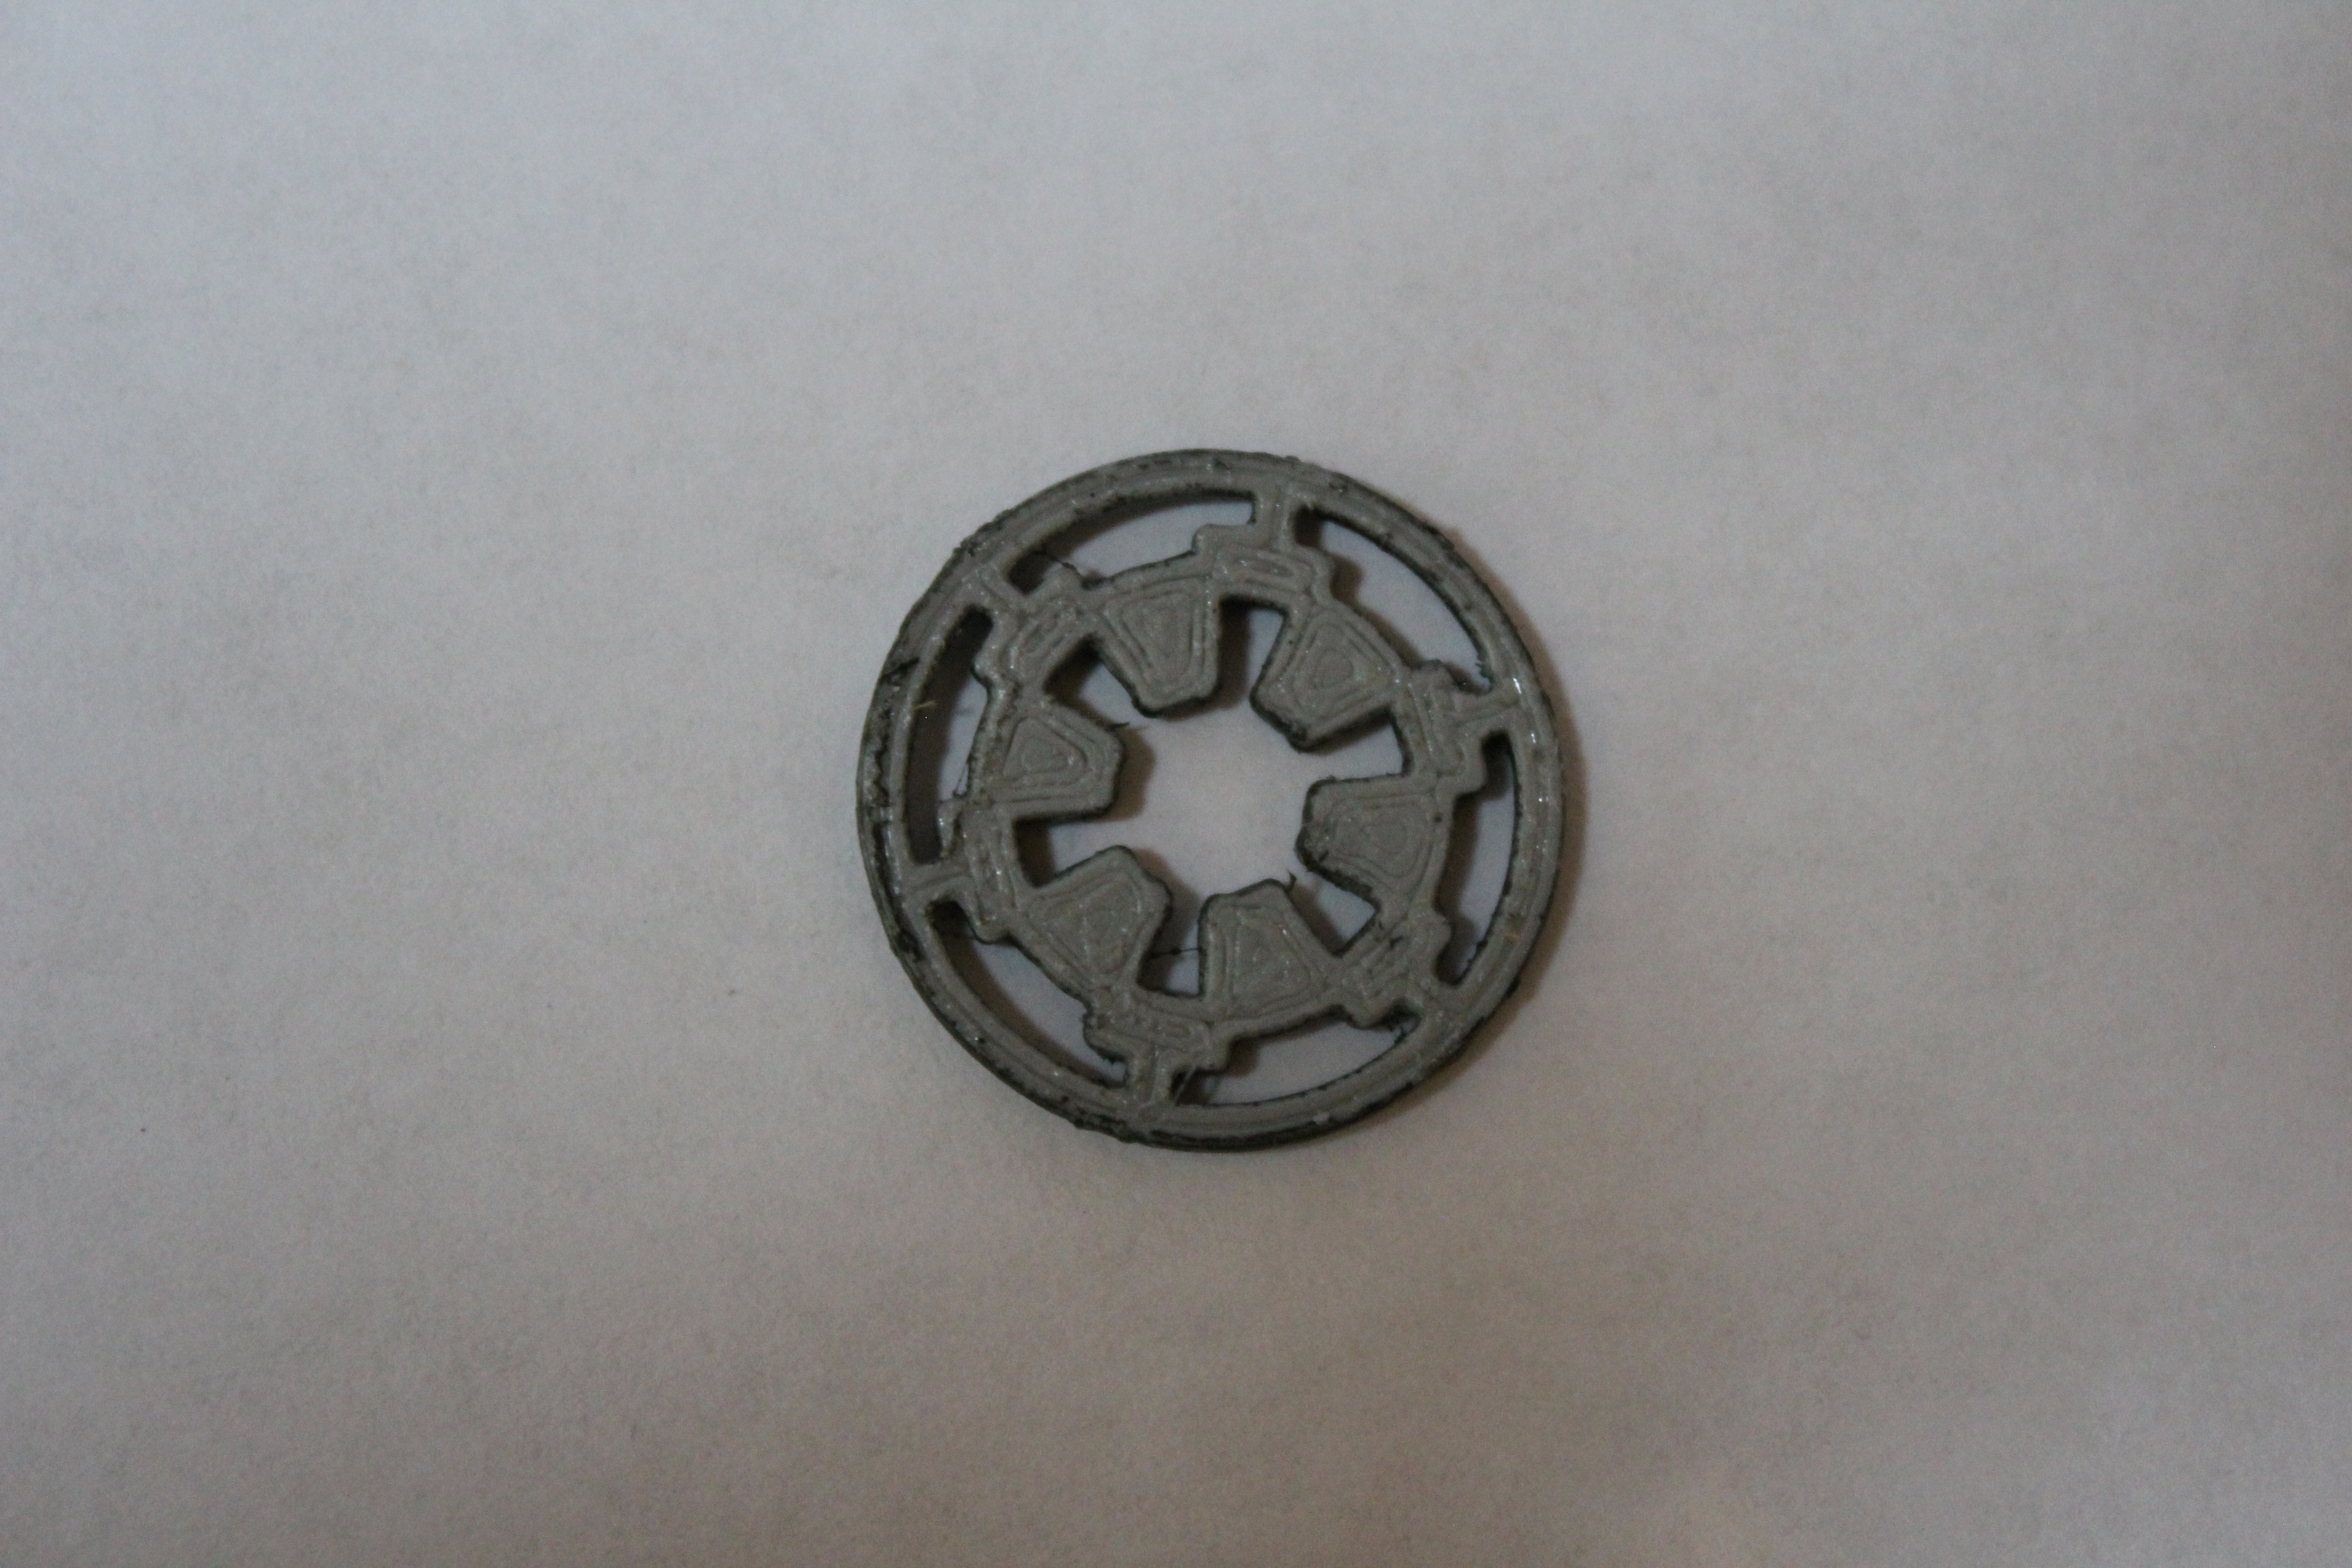 IMG_2342.JPG Download free STL file Star Wars Imperial Seal (Scaleable) • 3D printing template, Bountyhunterxx5